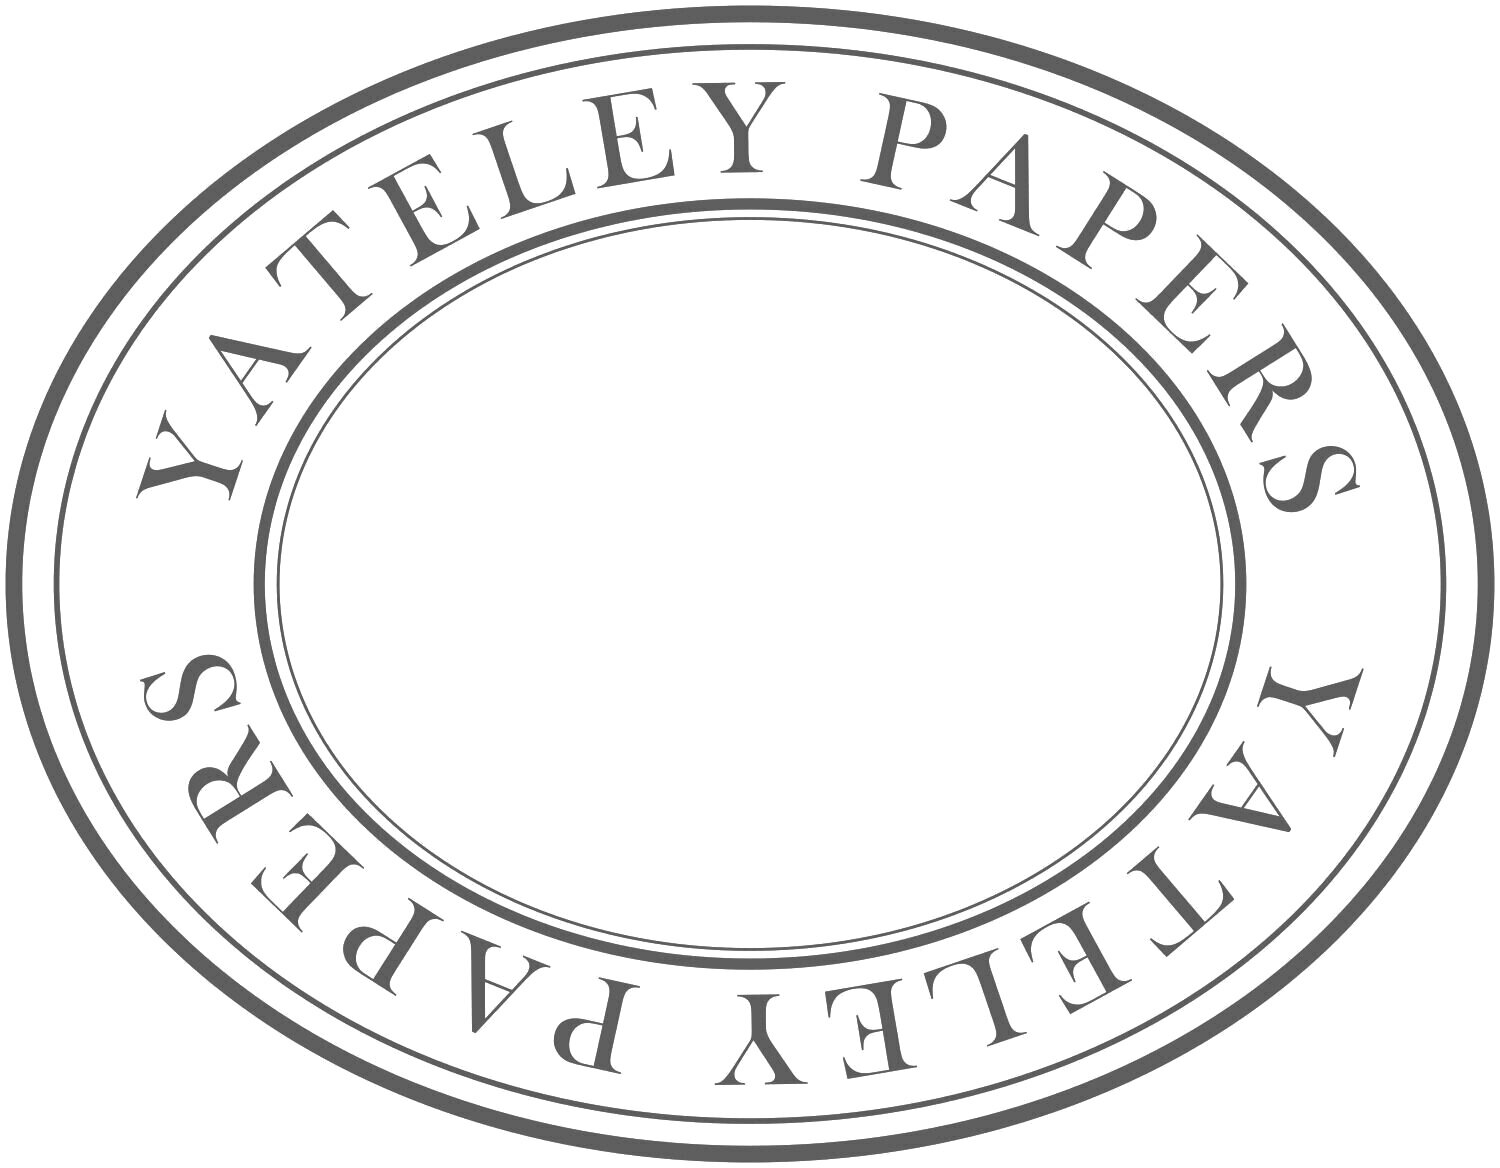 Yateleypapers